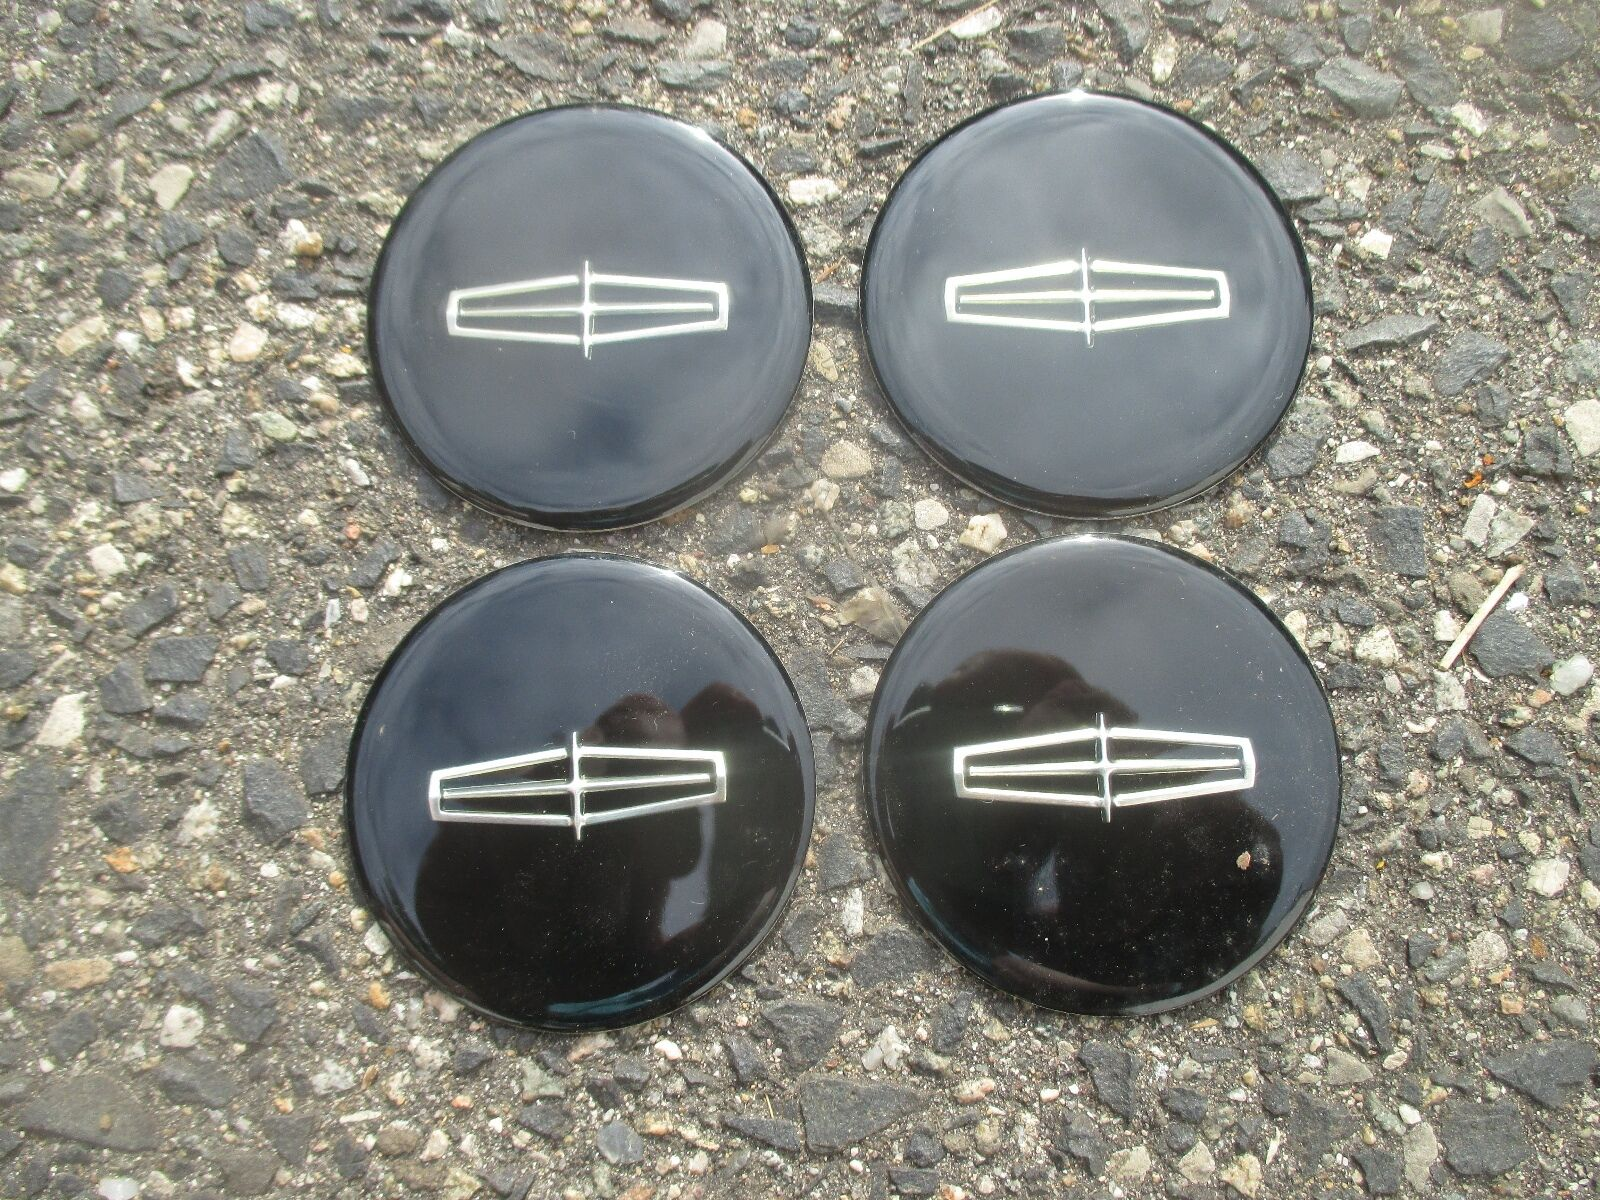 Lincoln emblems stickers logos badges for hubcaps wheel covers alloy wheels